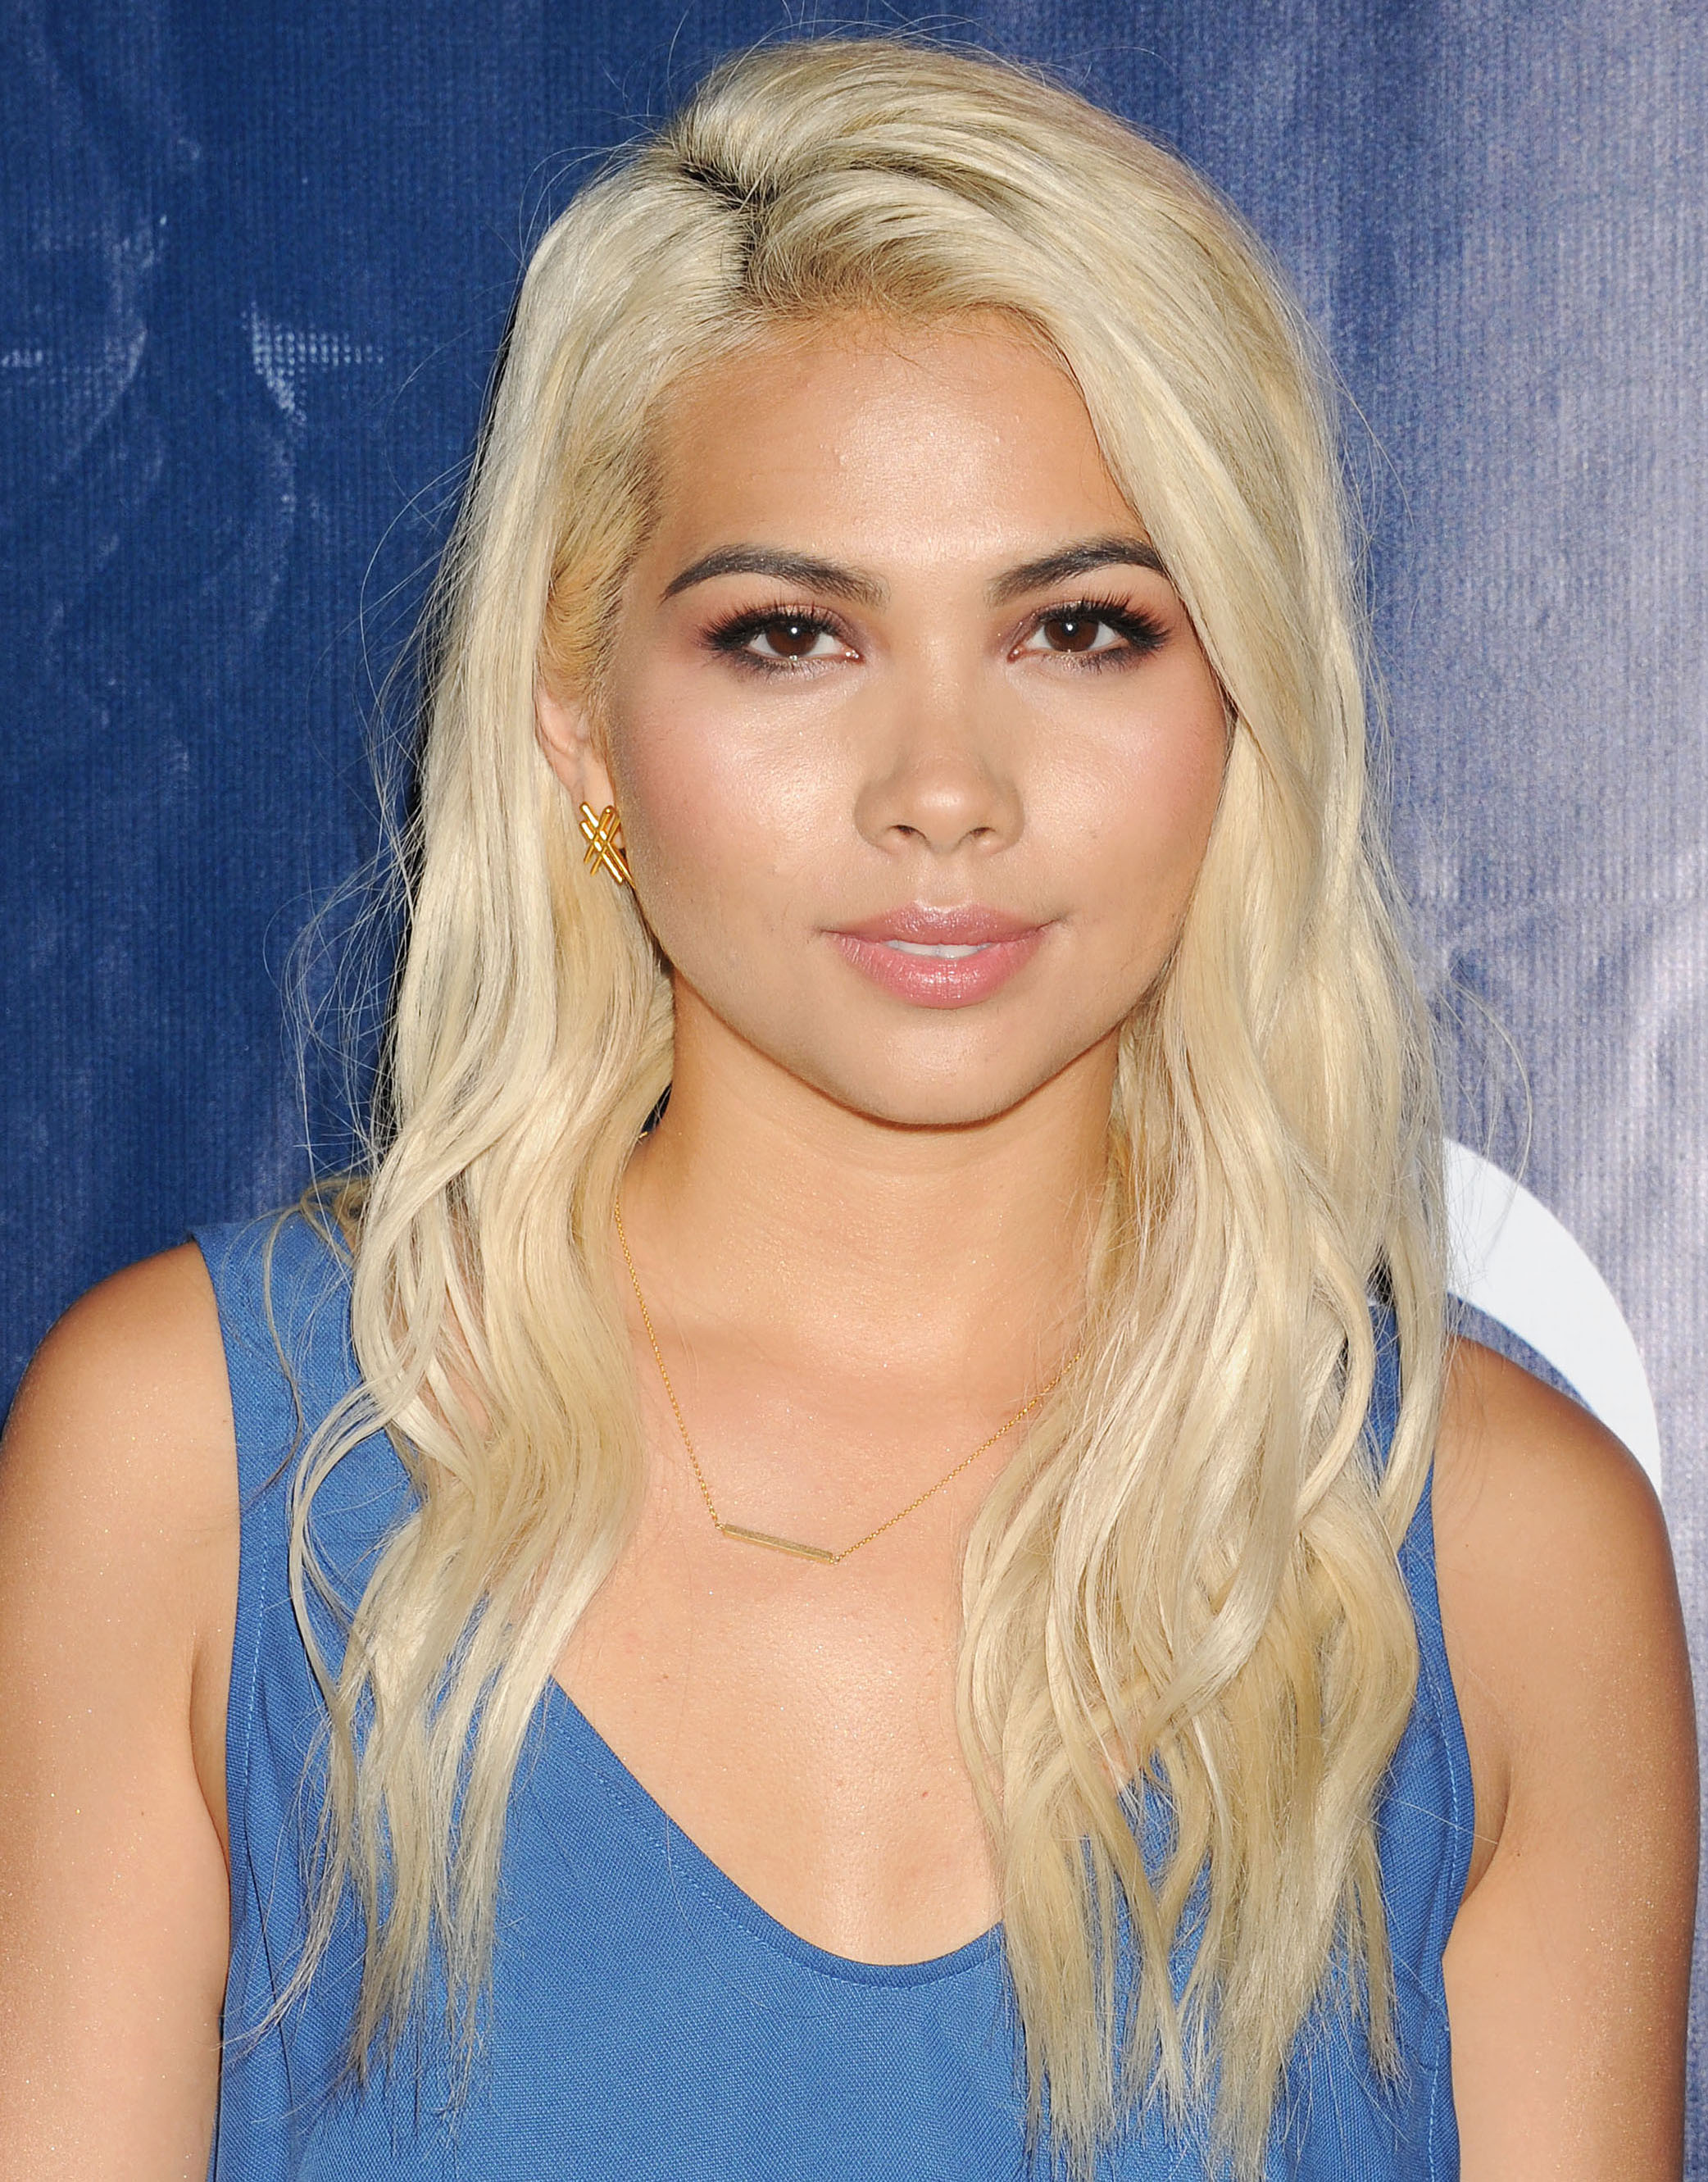 Hayley Kiyoko HD wallpapers, Desktop wallpaper - most viewed